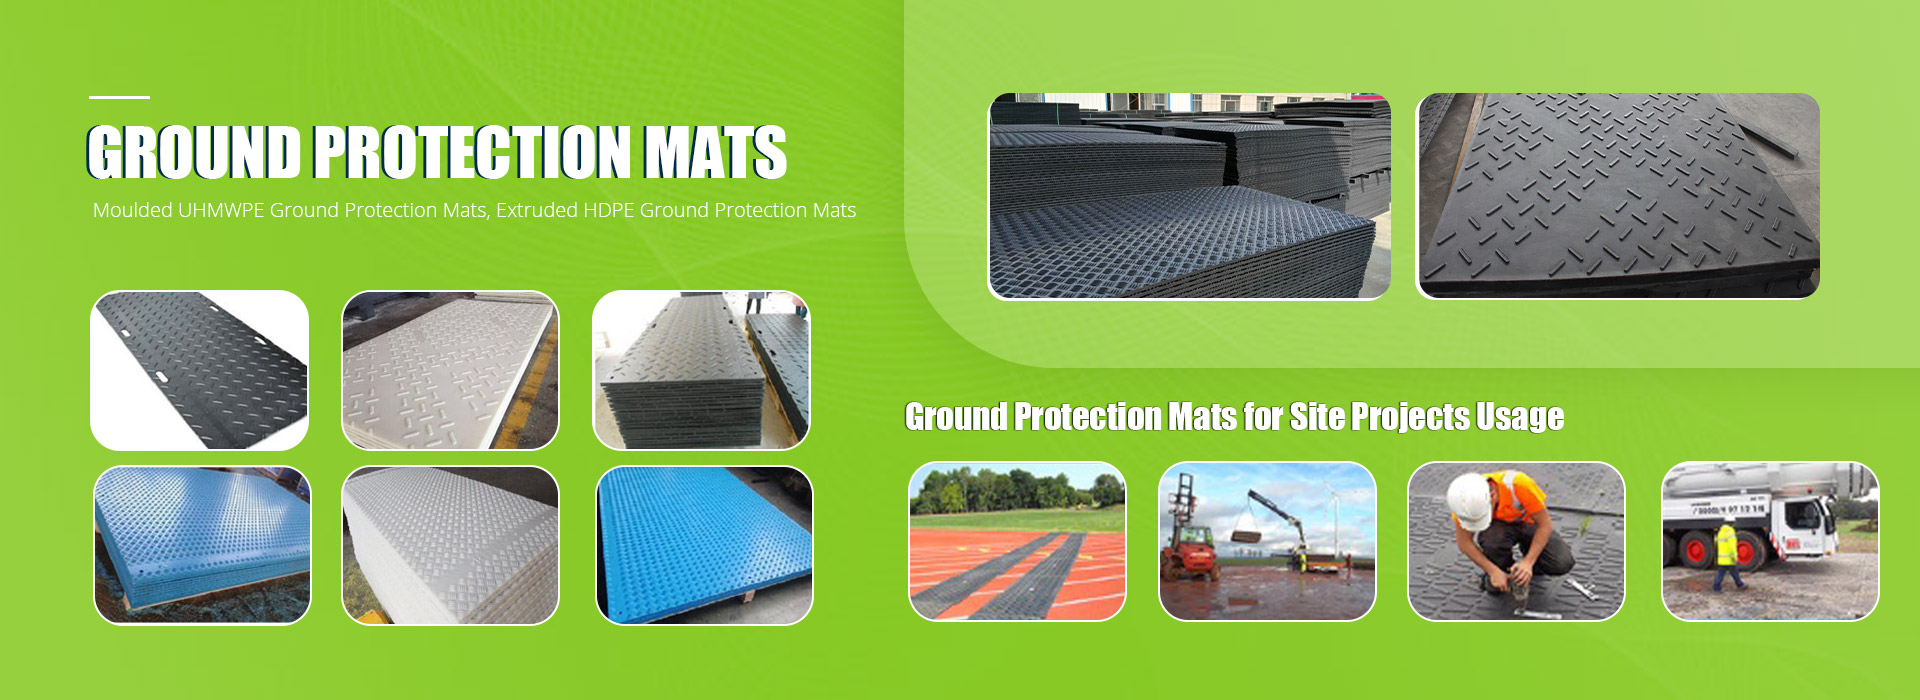 Groundprotection Mats